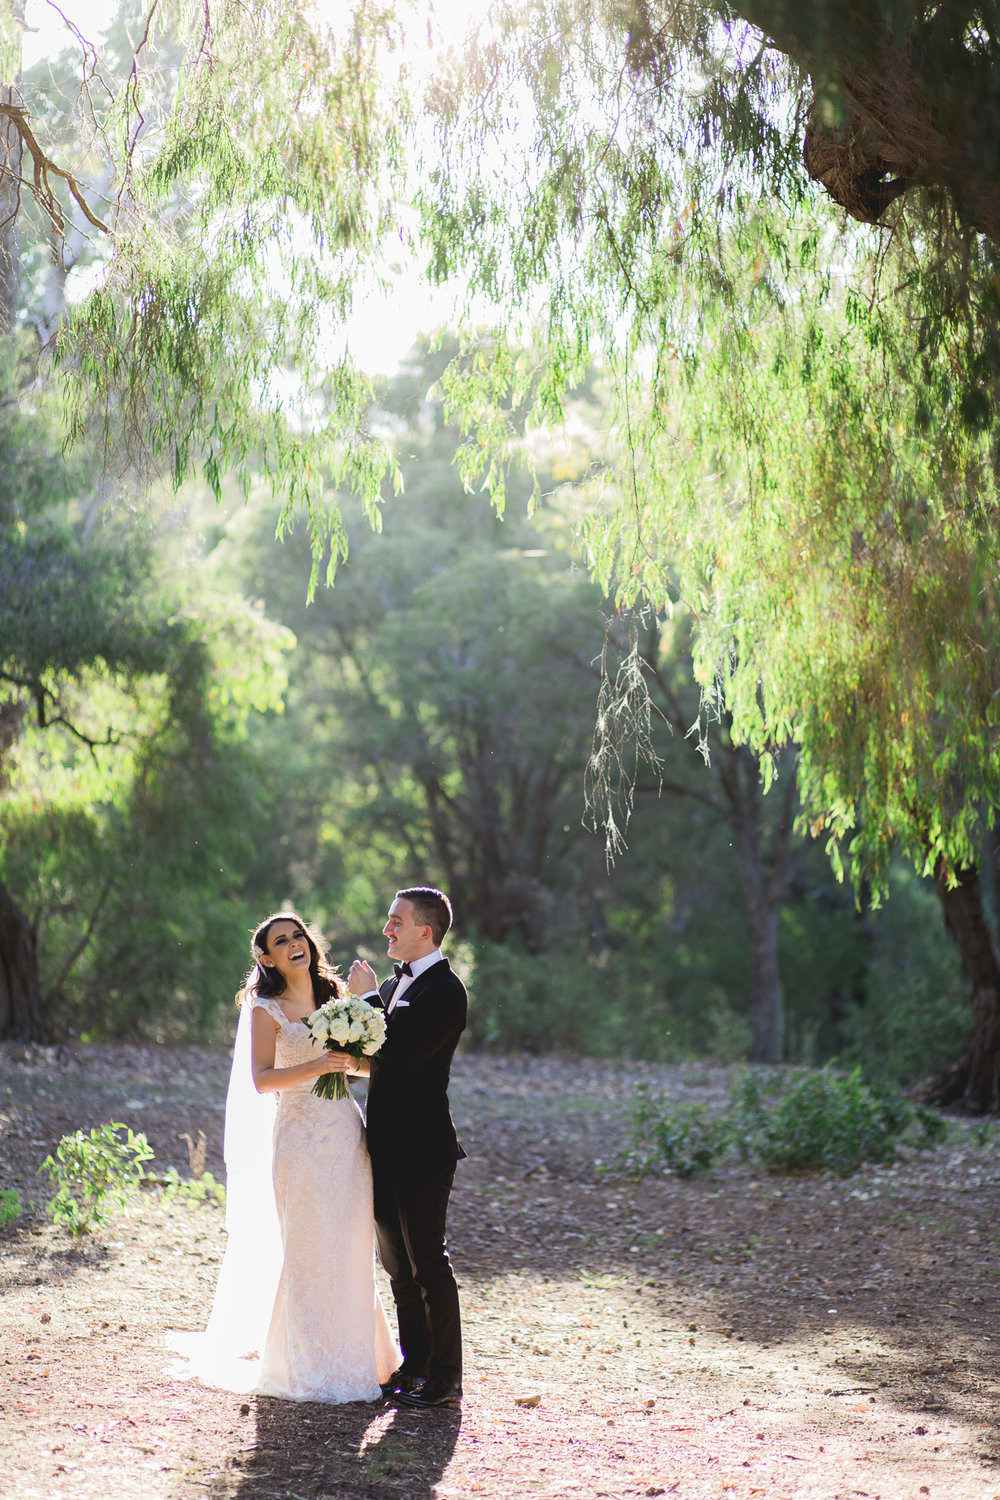 Emily Gibney (mr & mrs gibney) Keegan Wong Photograph 10.jpg